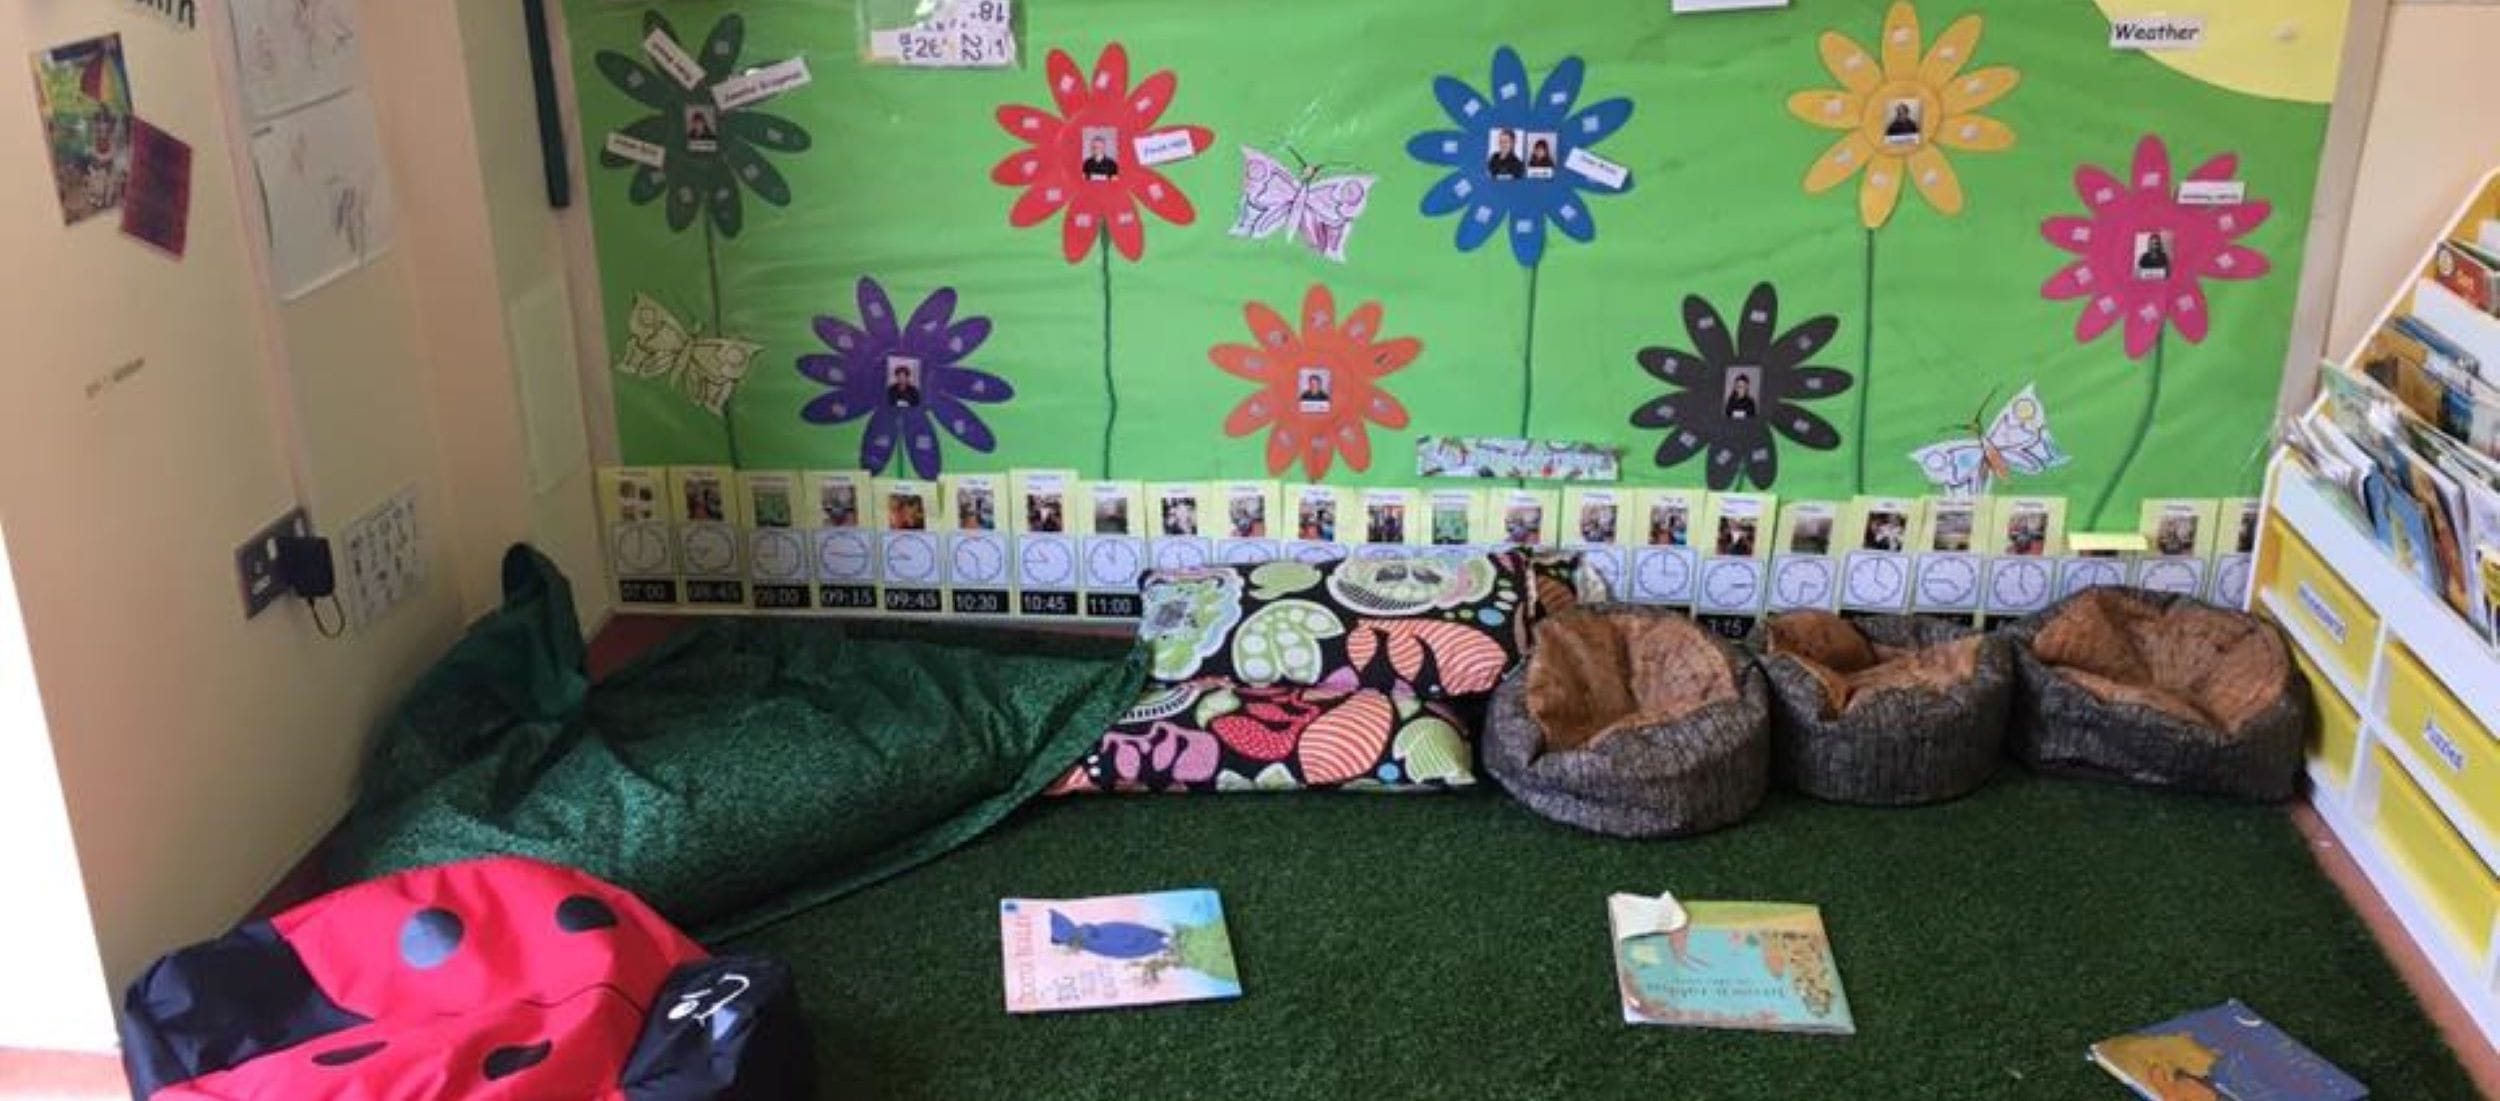 INSPIRING DAY NURSERY IN HARLOW, ESSEX